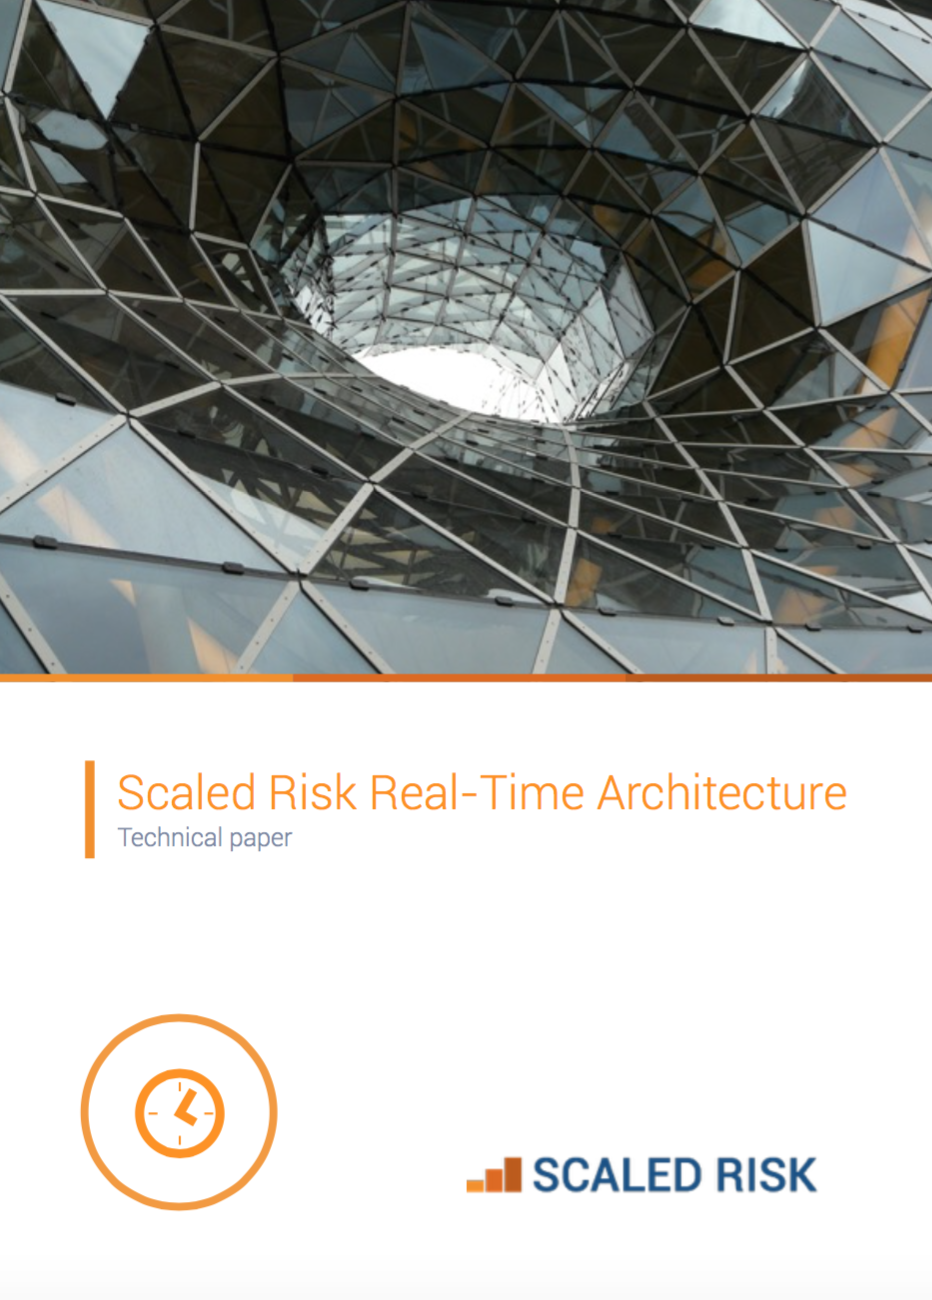 TECHNICAL PAPER: Scaled Risk Real-Time Architecture